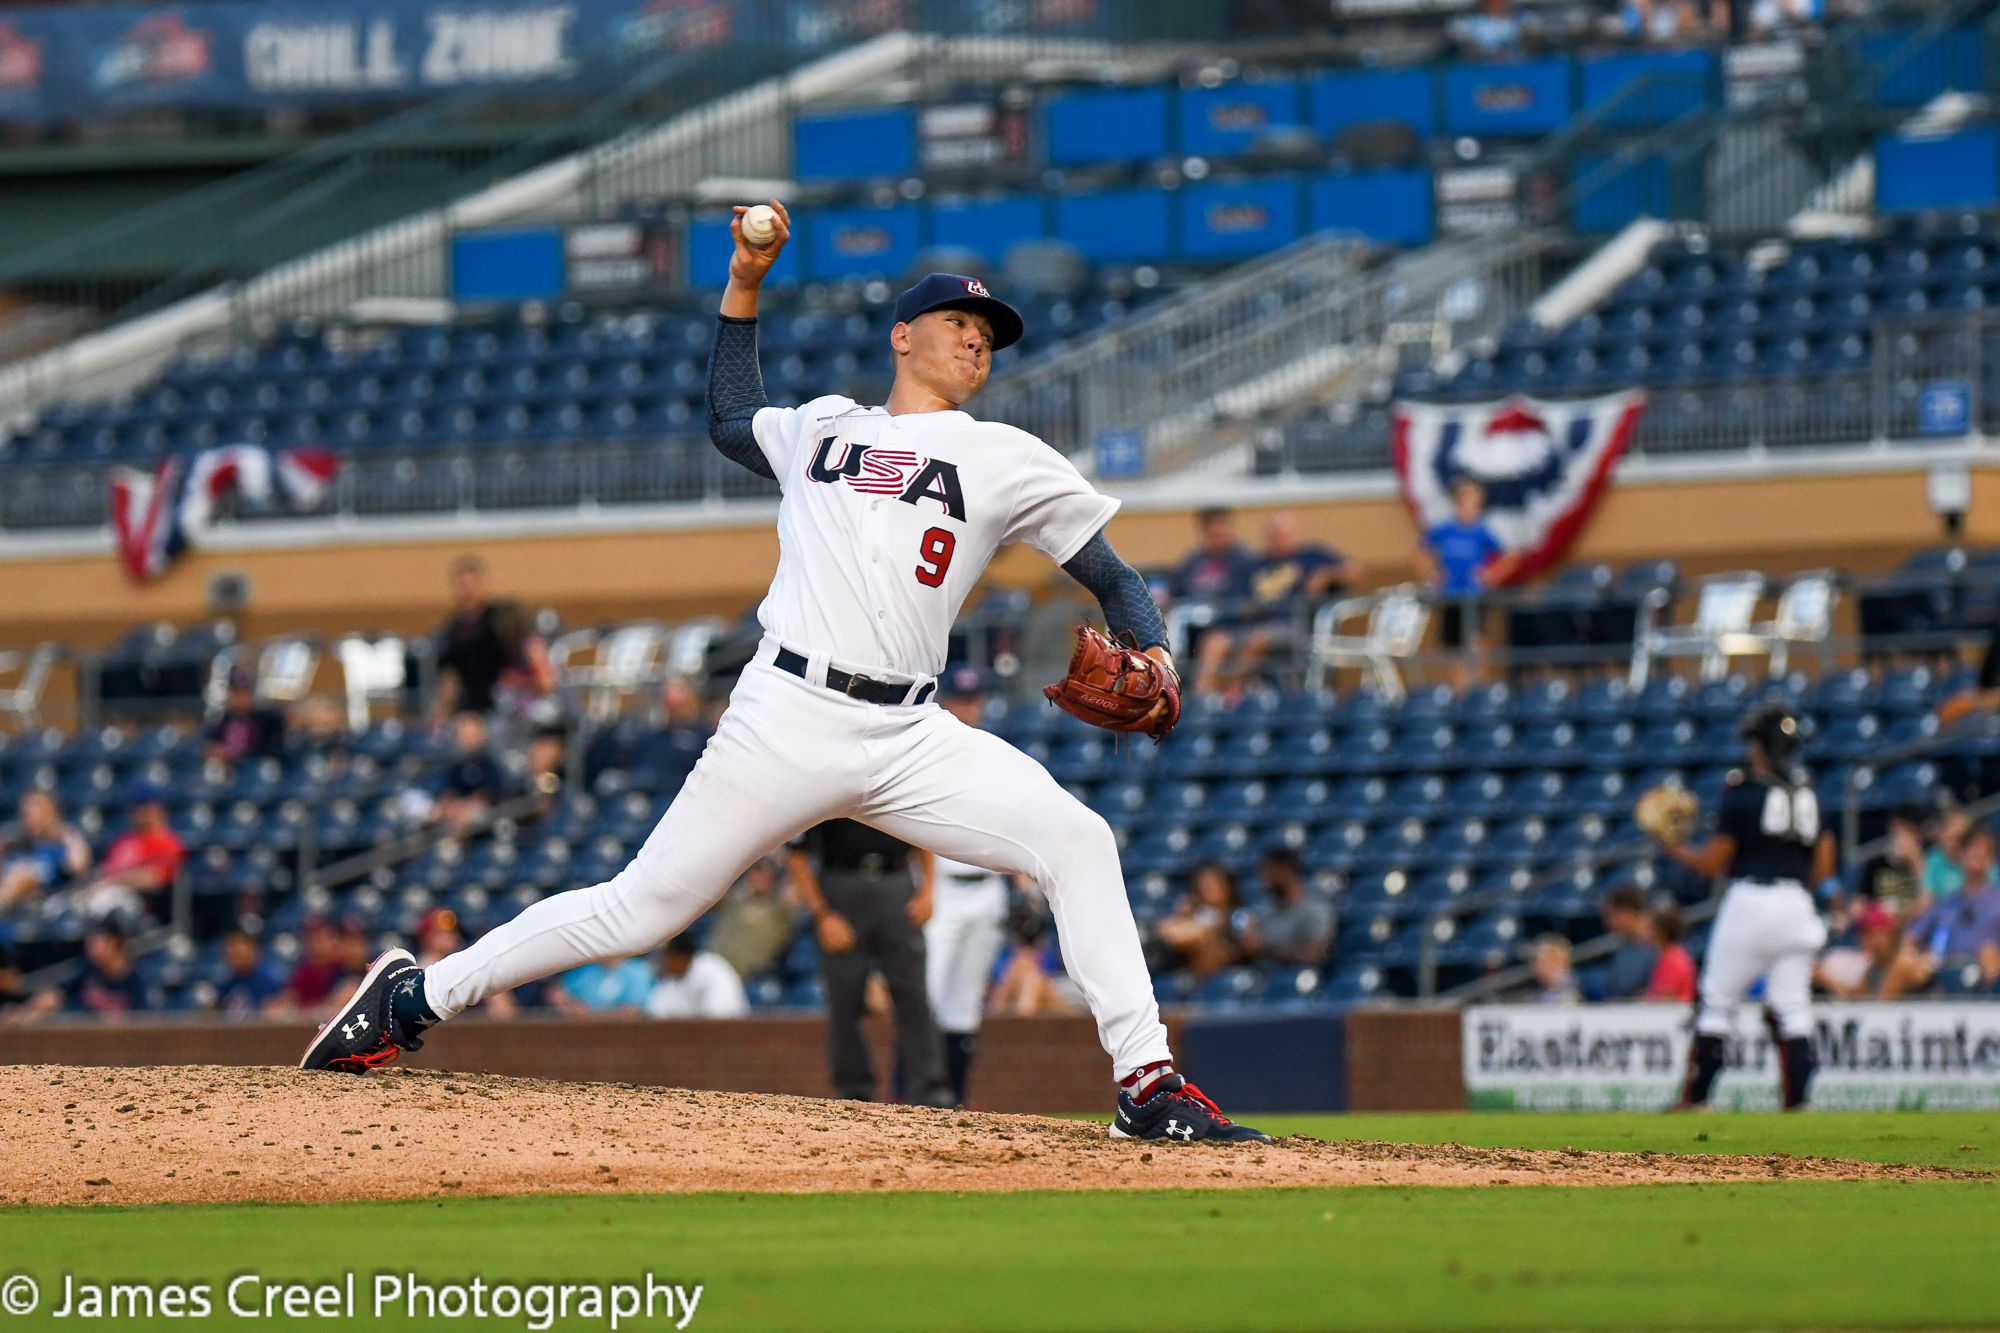 USA Baseball cliches Chinese Taipei Series with Two Wins